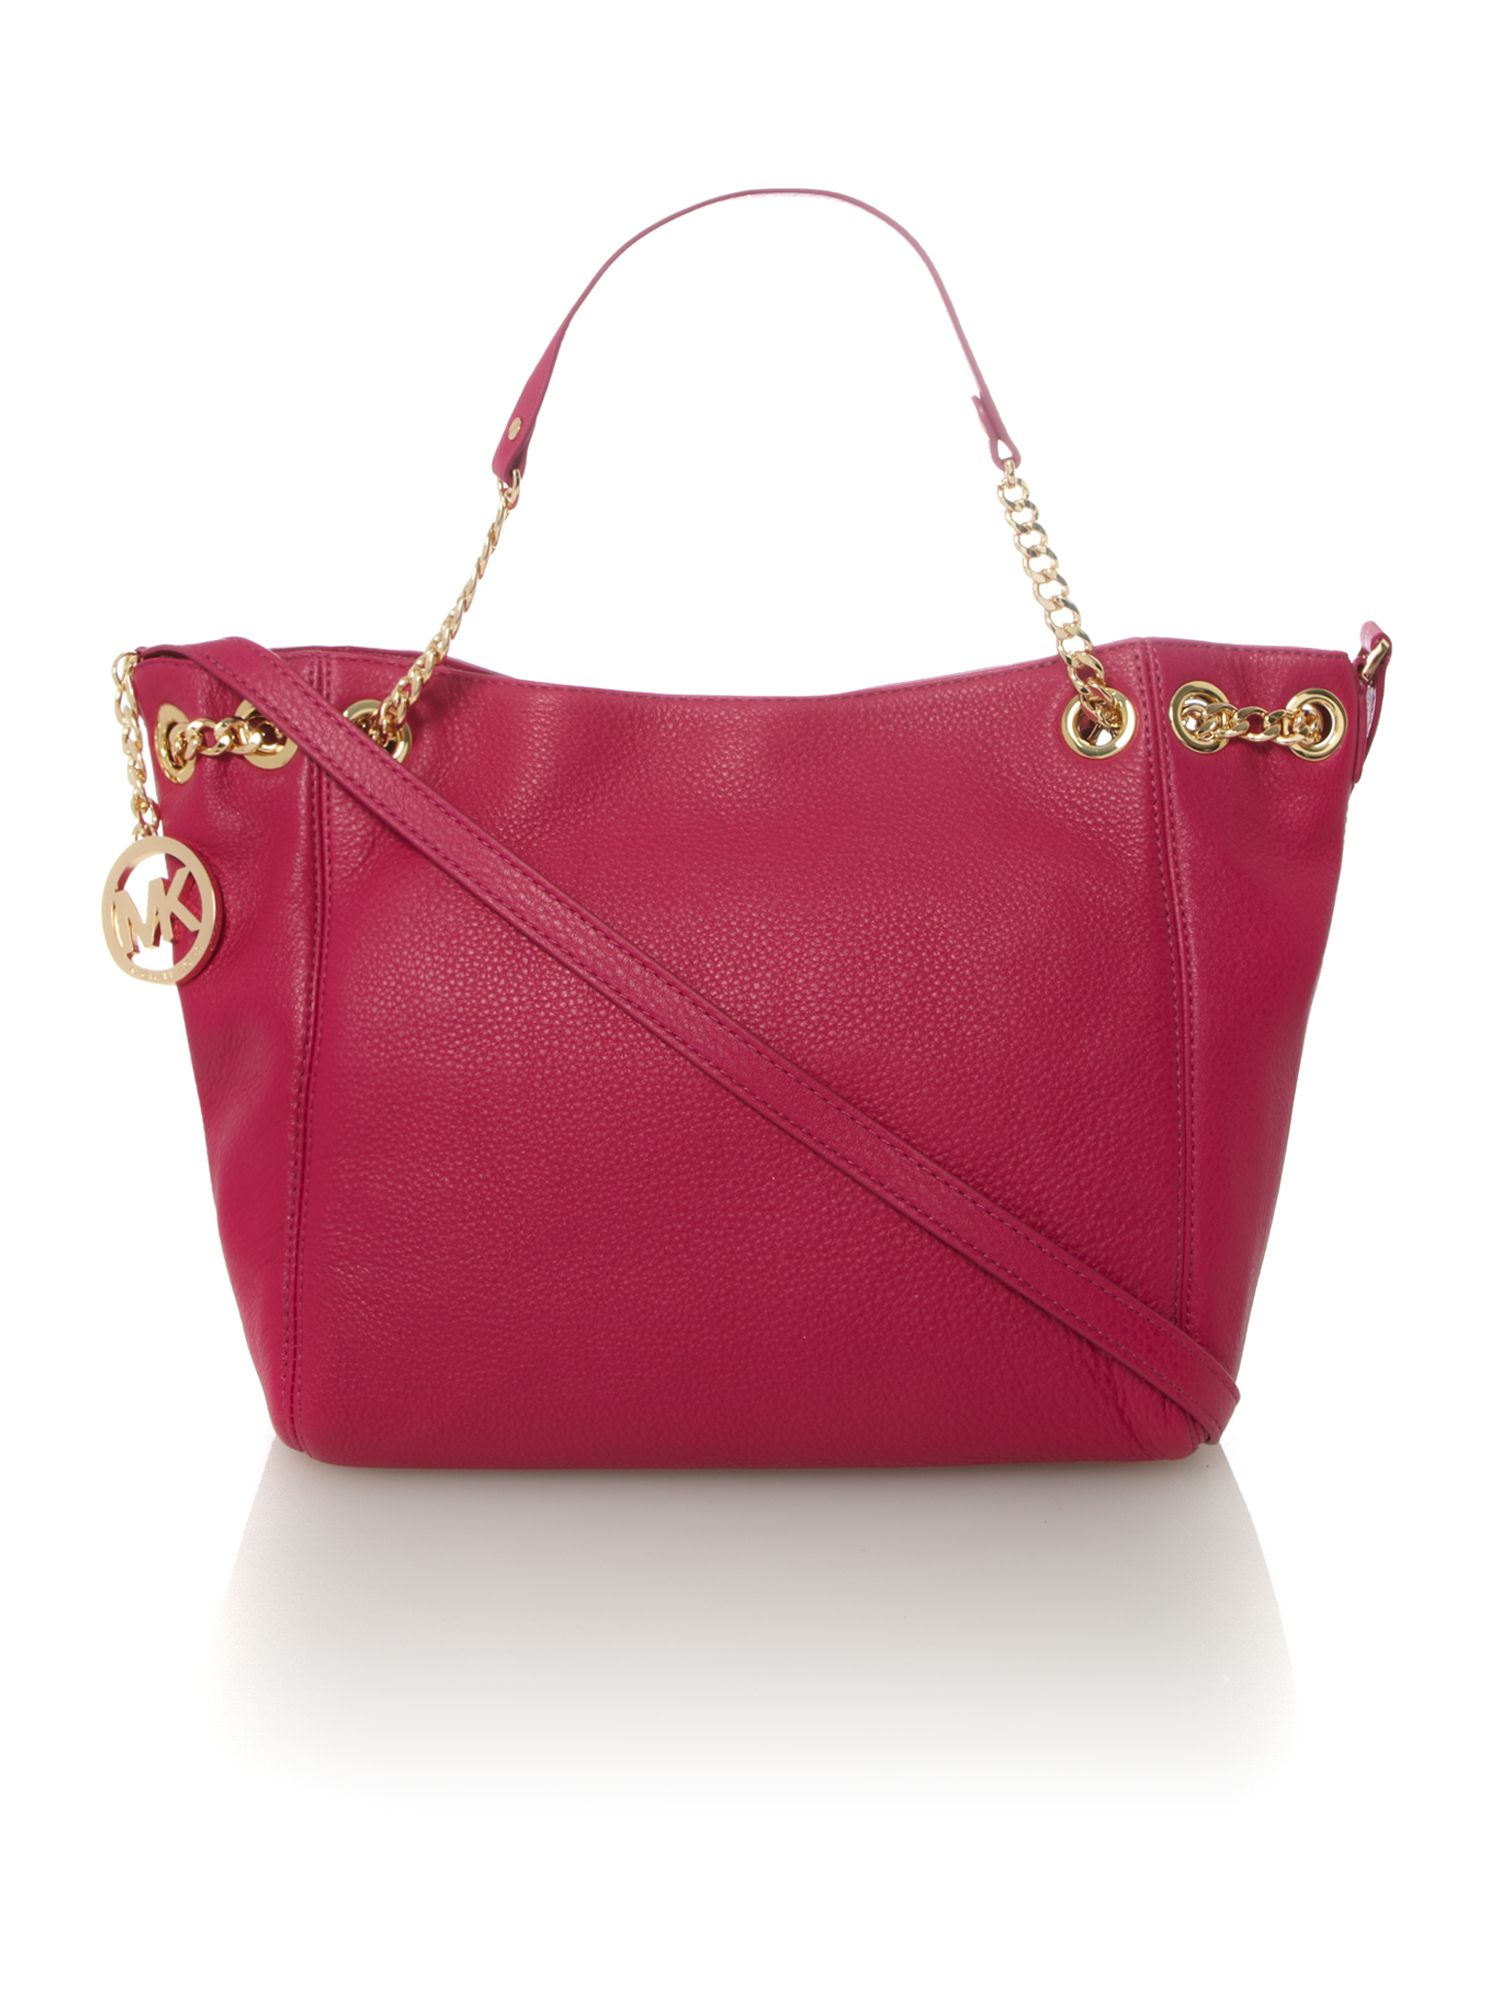 Jet set chain fuschia ew tote bag